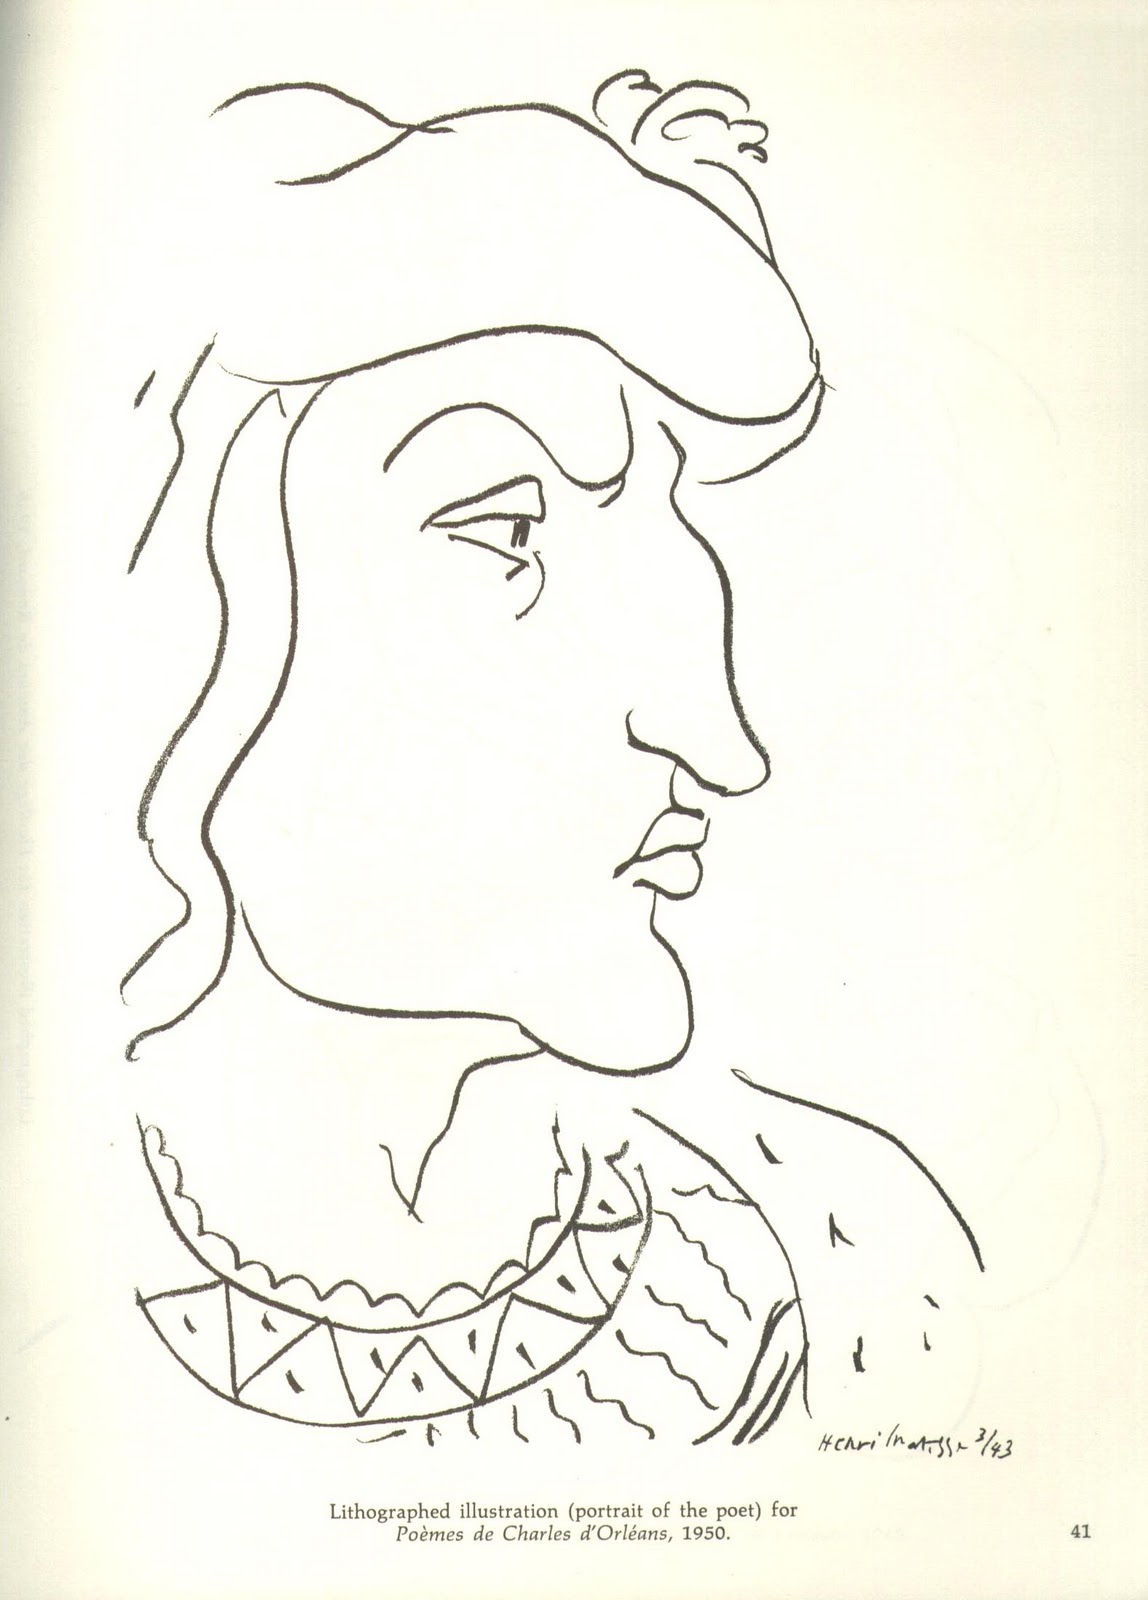 Line Drawing Matisse : Un rincón sombra matisse line drawing and prints